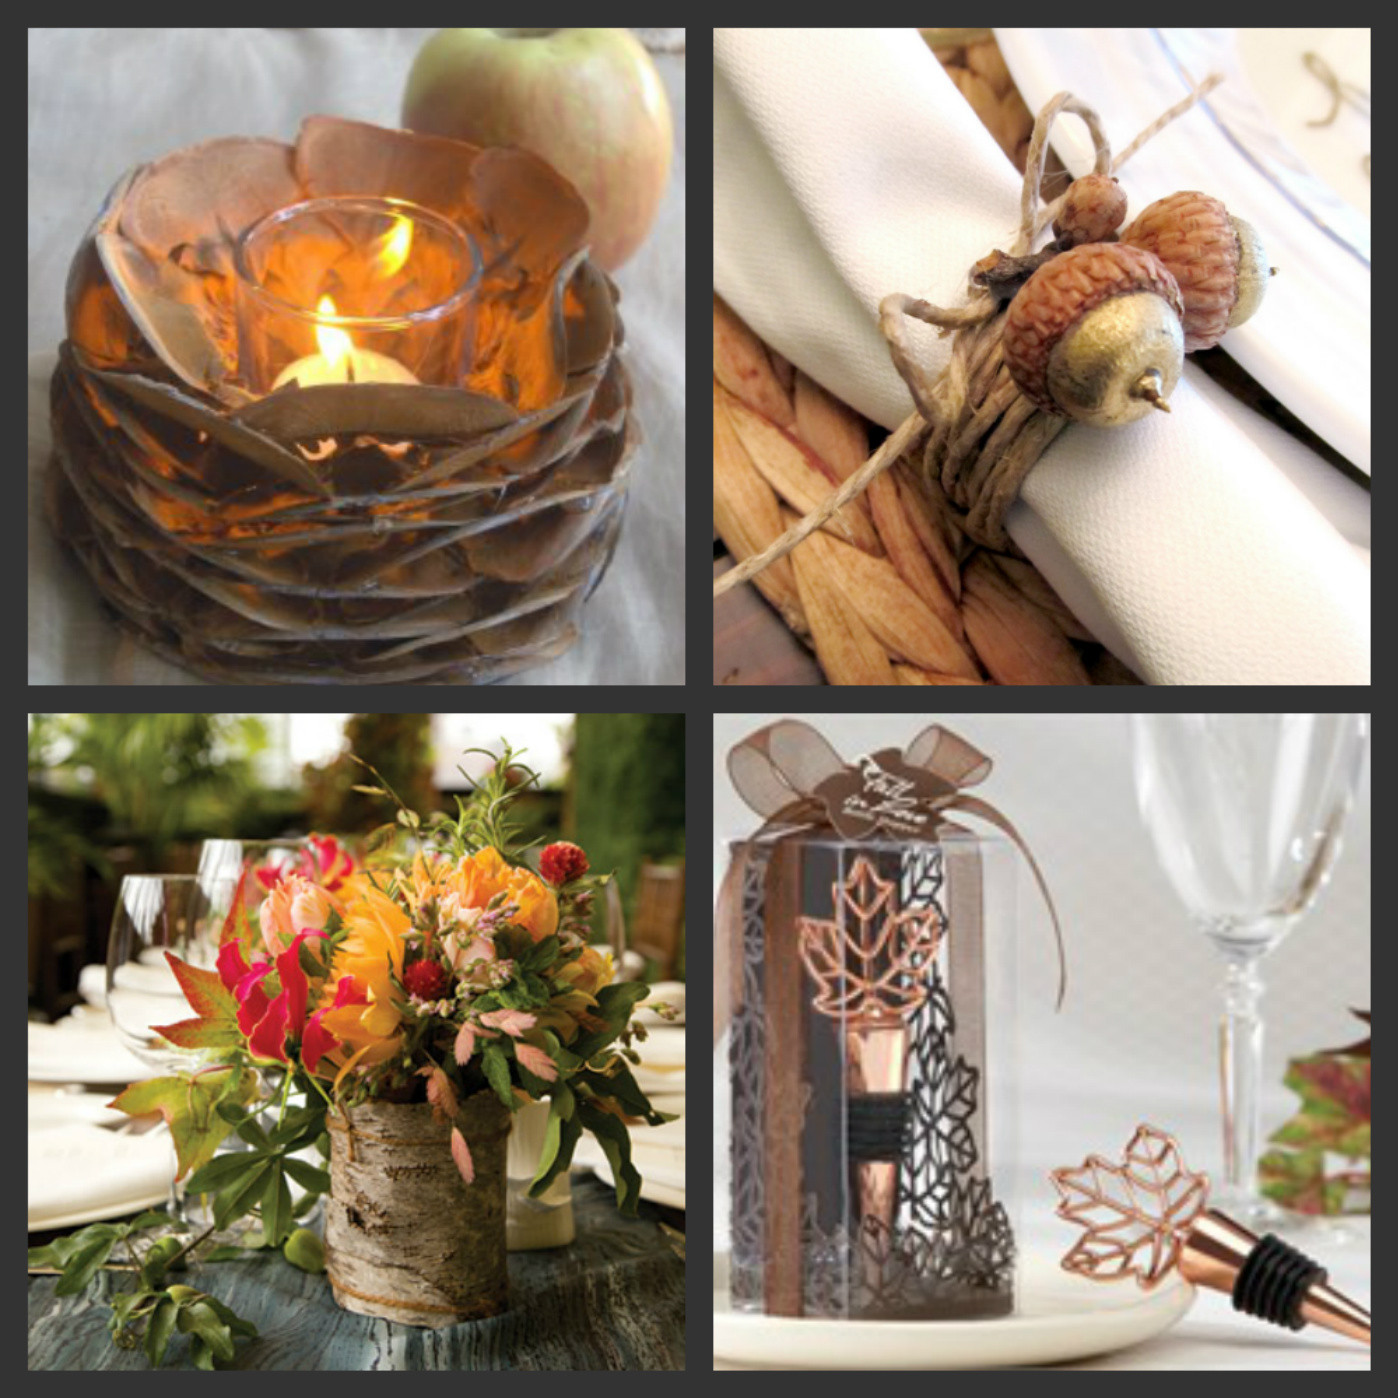 Best ideas about Fall Wedding Centerpieces DIY . Save or Pin Weddings Are Fun Blog DIY Autumn Wedding Tables Now.